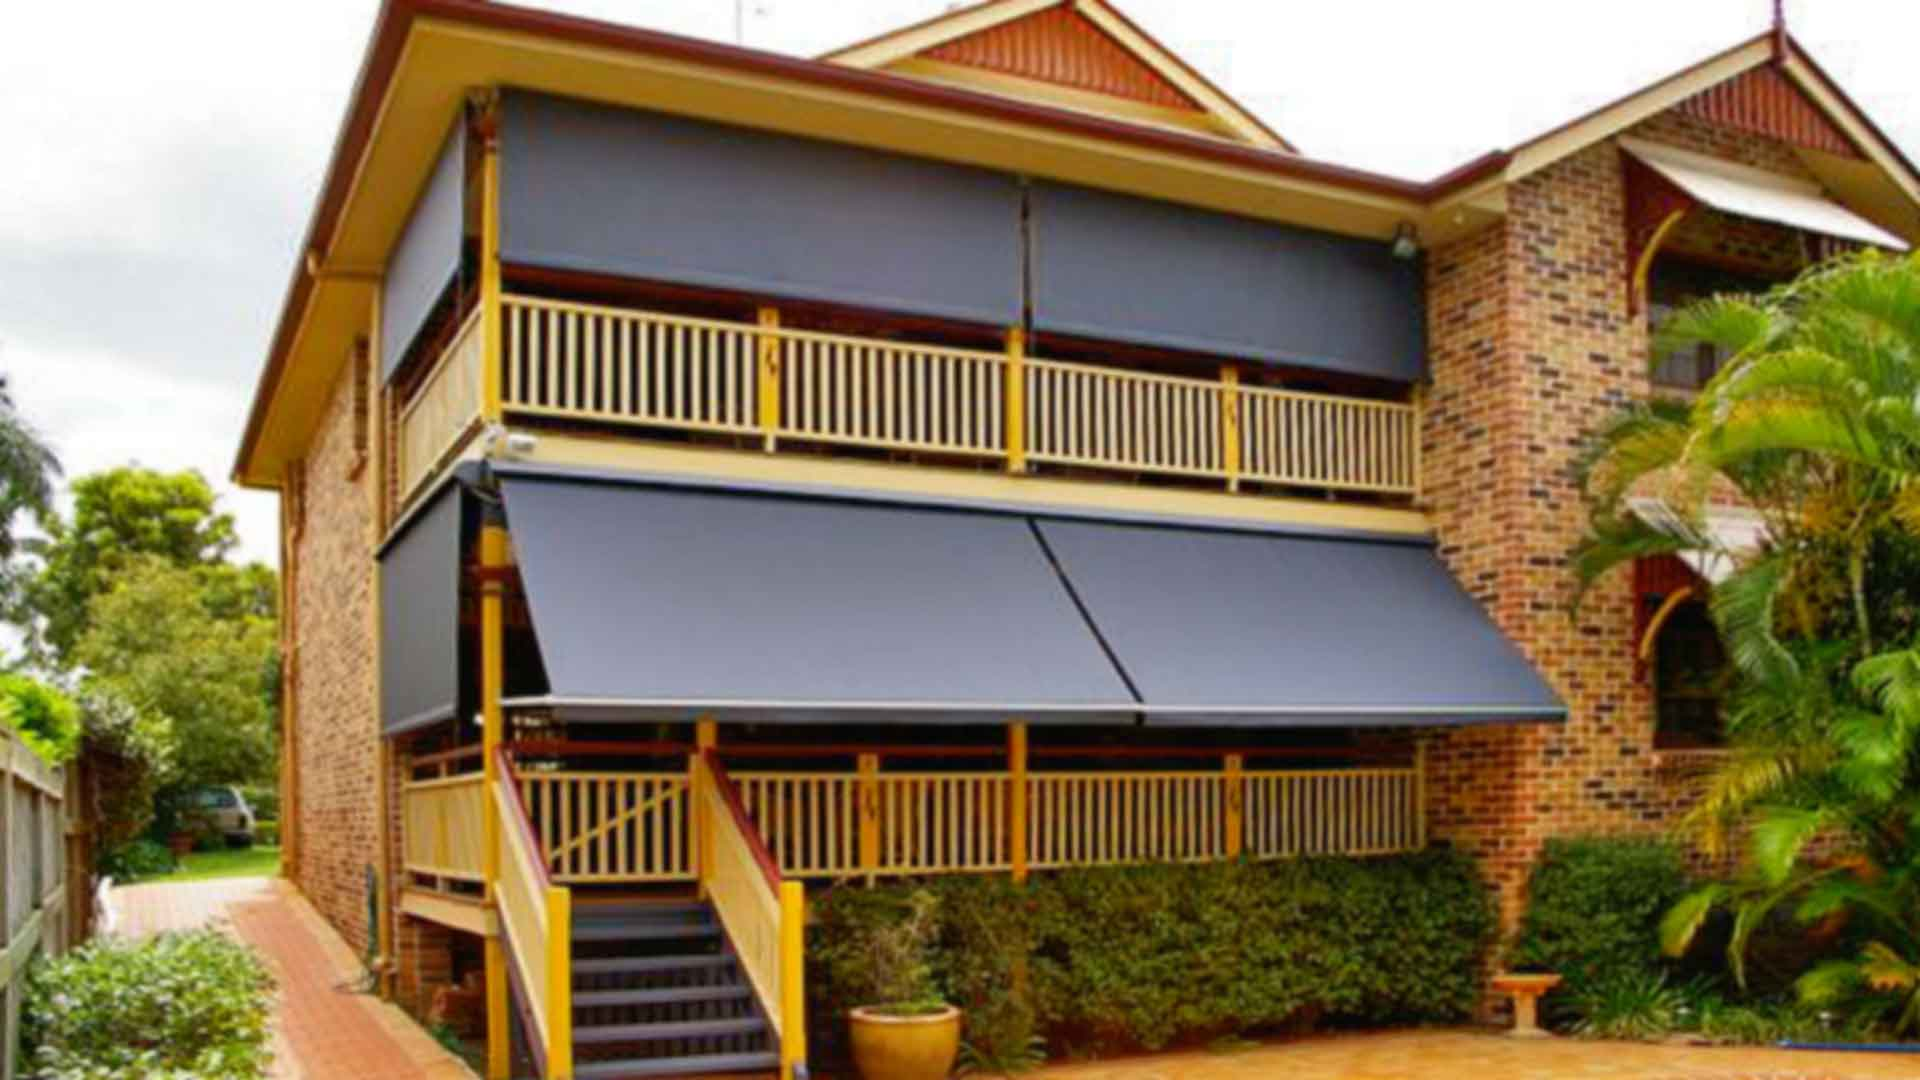 We Have A Huge Range Of Pivot Arm Awnings Perfect For Your Home Or Business